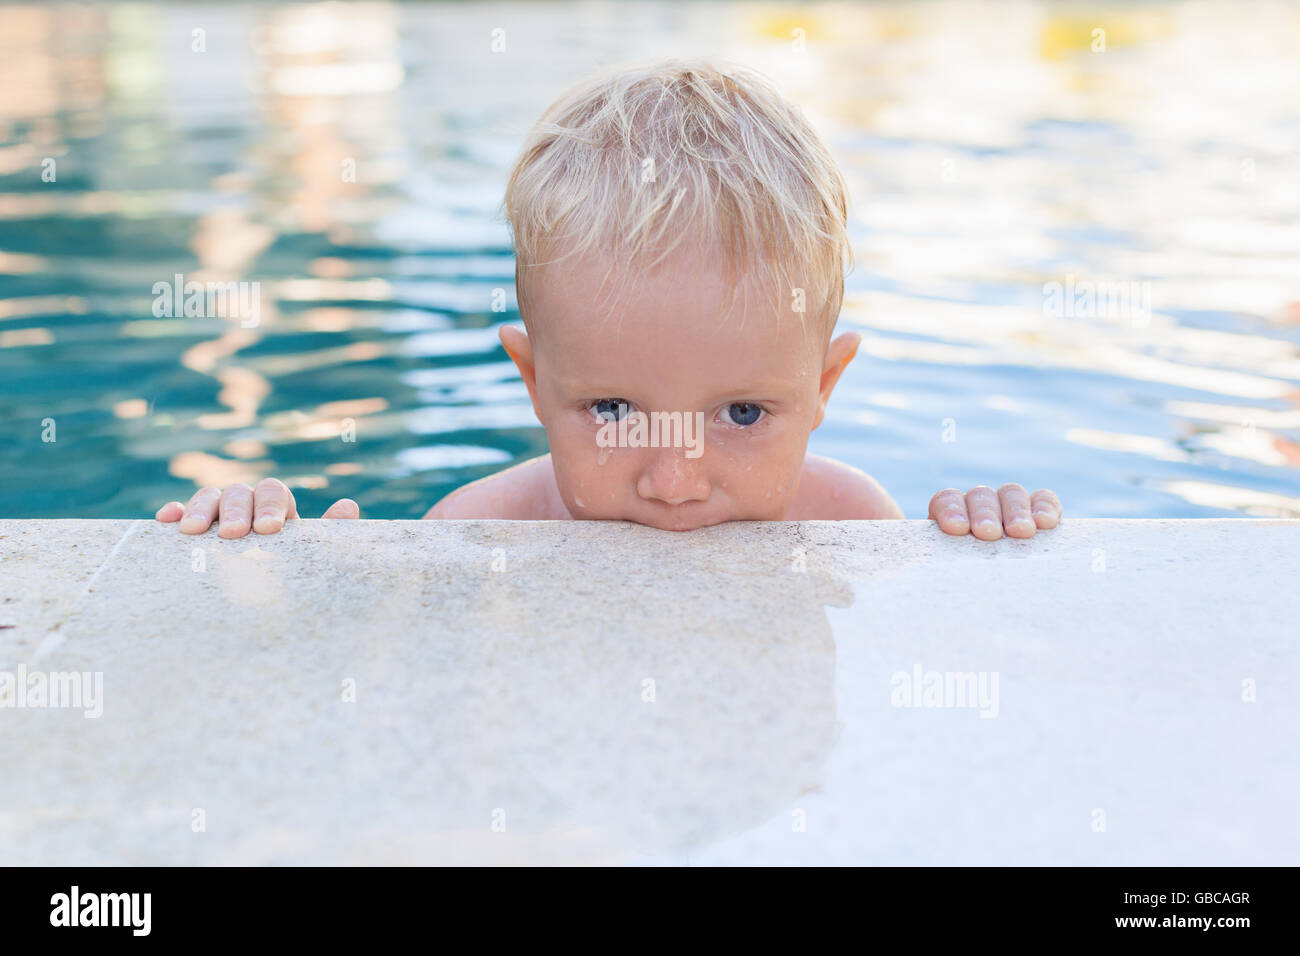 Child learn to swim - funny face of little baby boy in pool. Active healthy lifestyle, water sport, children physical - Stock Image